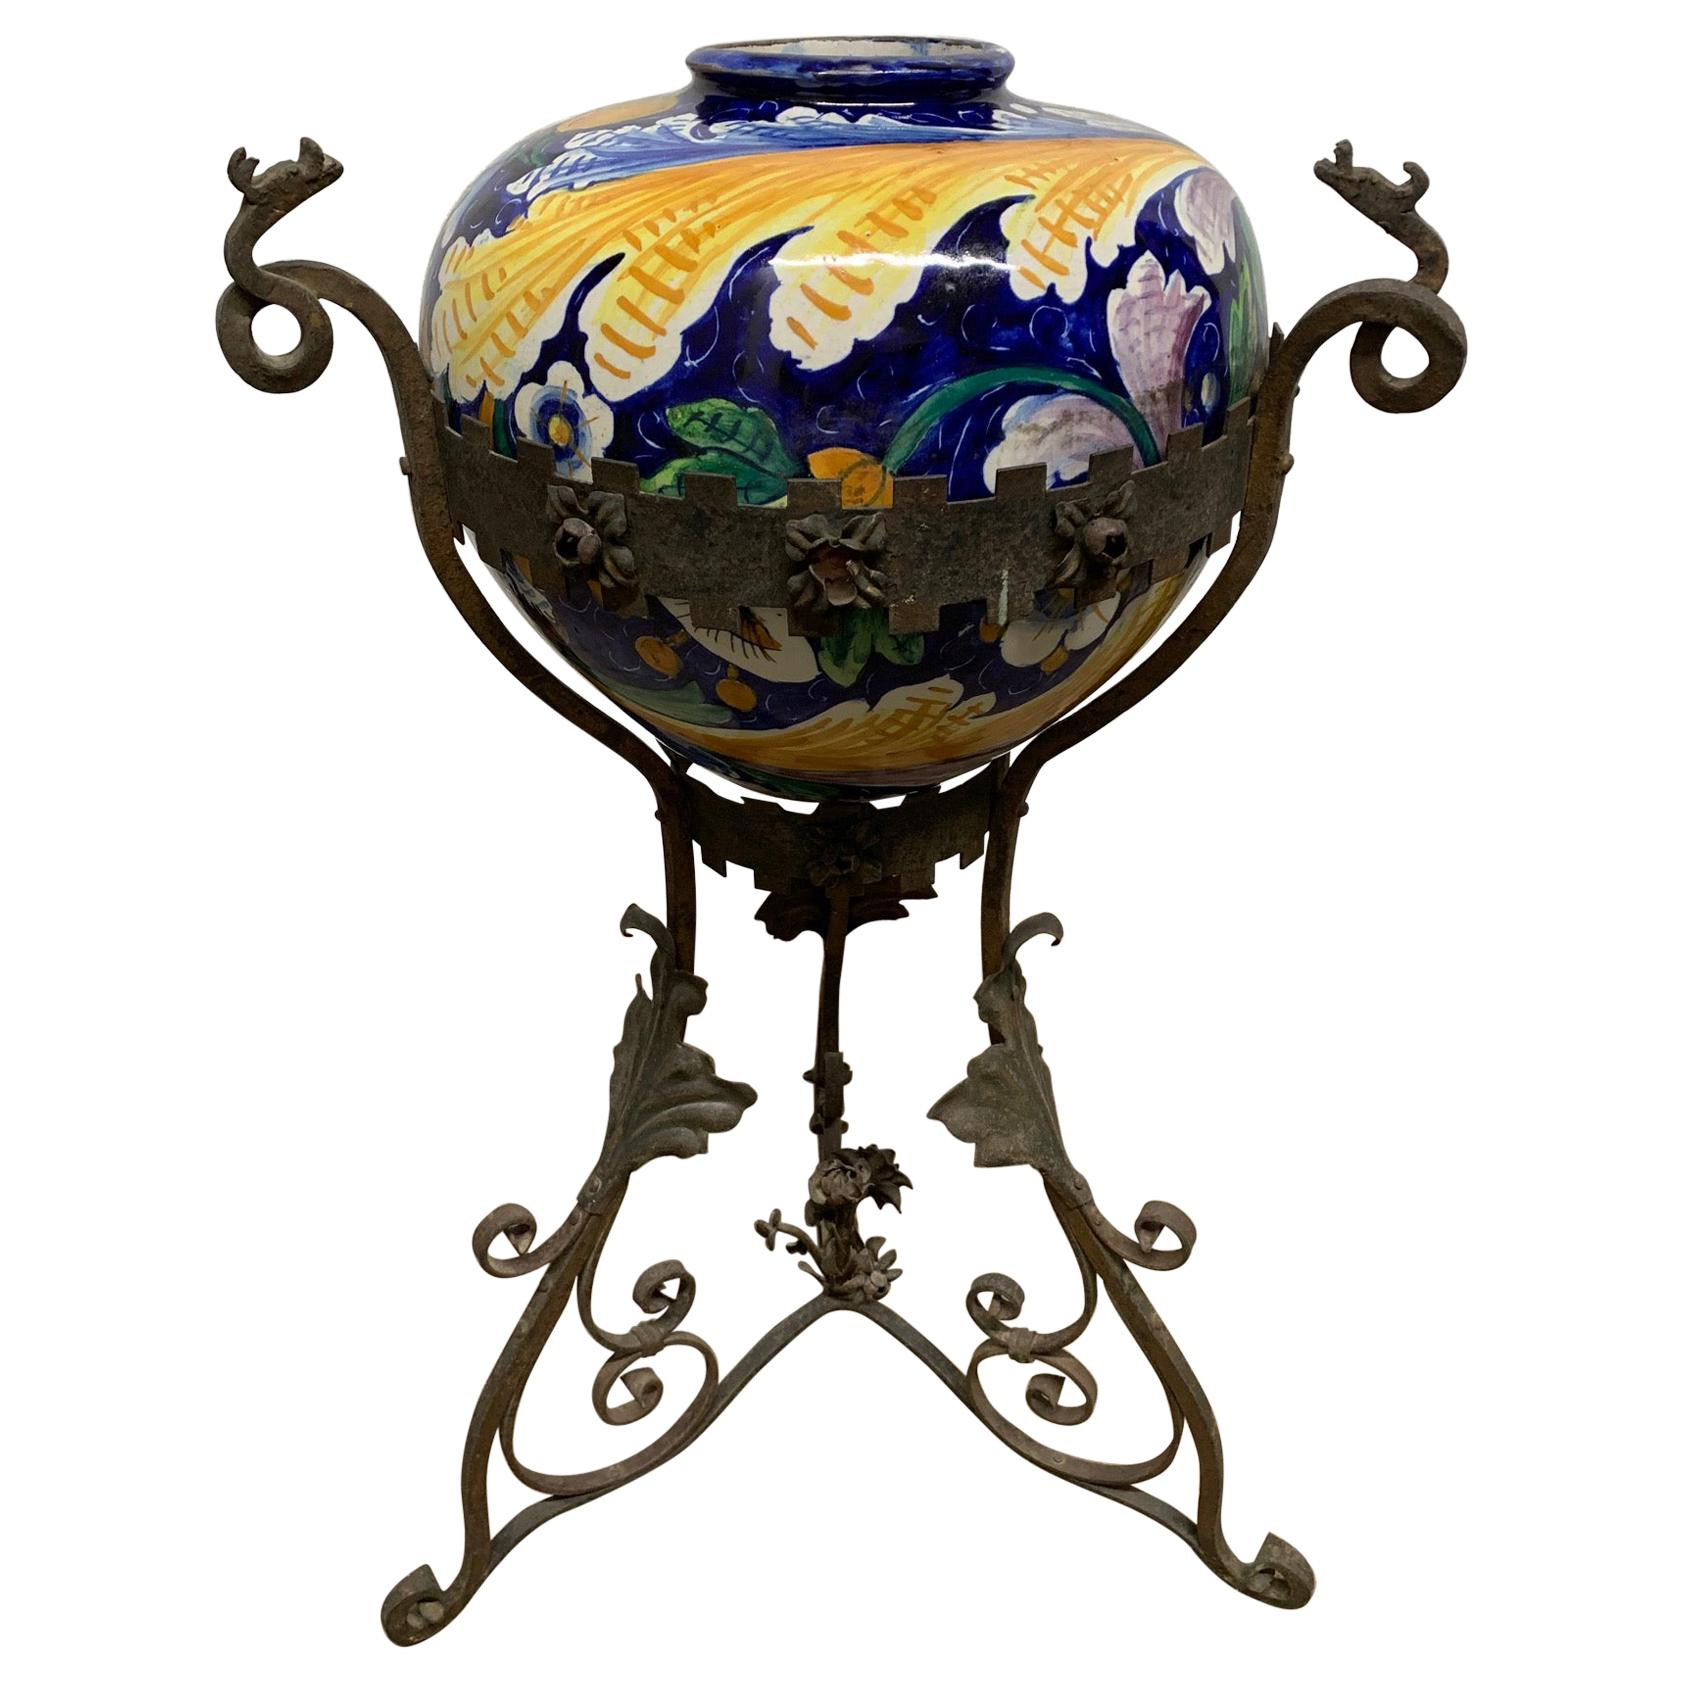 Antique Italian Wrought Iron Planter with Hand Painted Majolica Vase